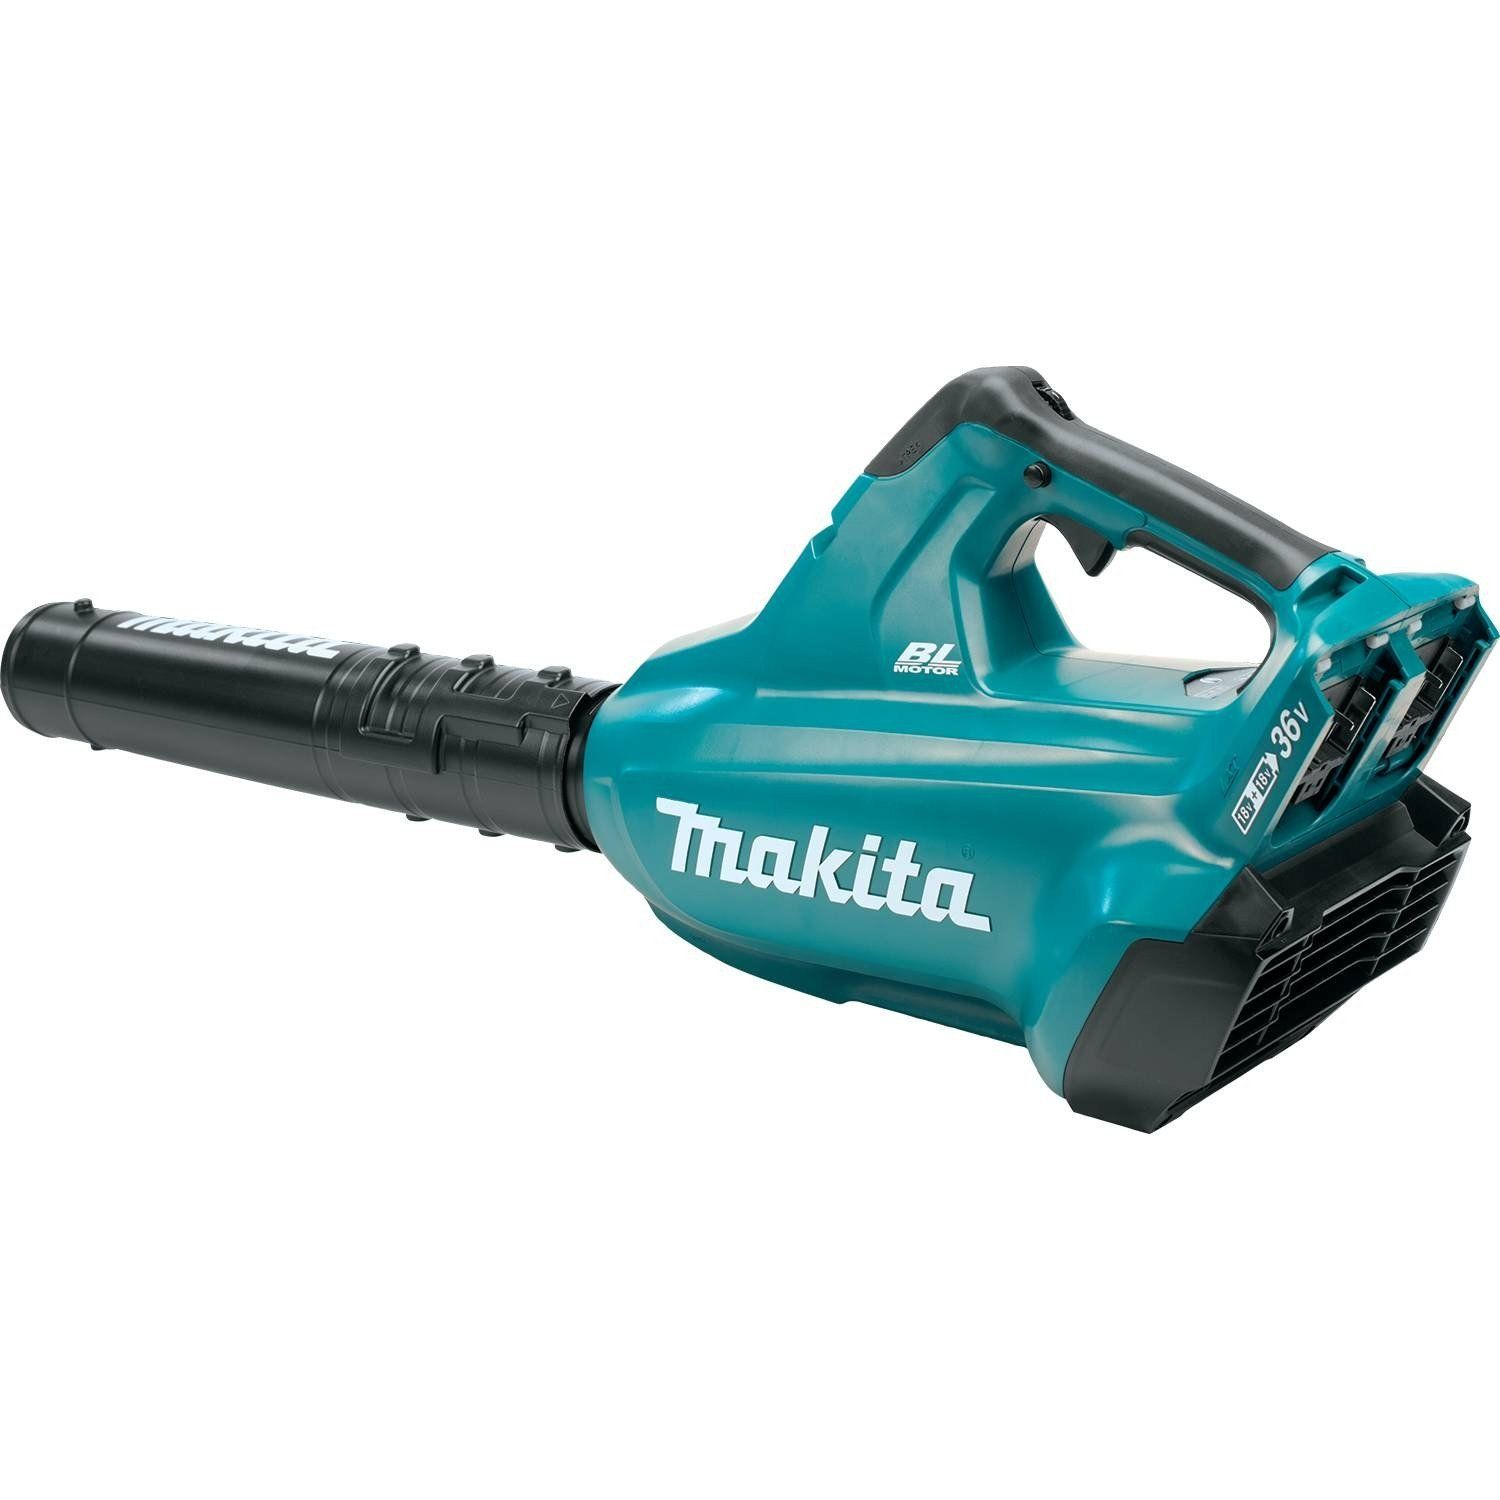 Makita XBU02PT Brushless Cordless Leaf Blower Review leafblower